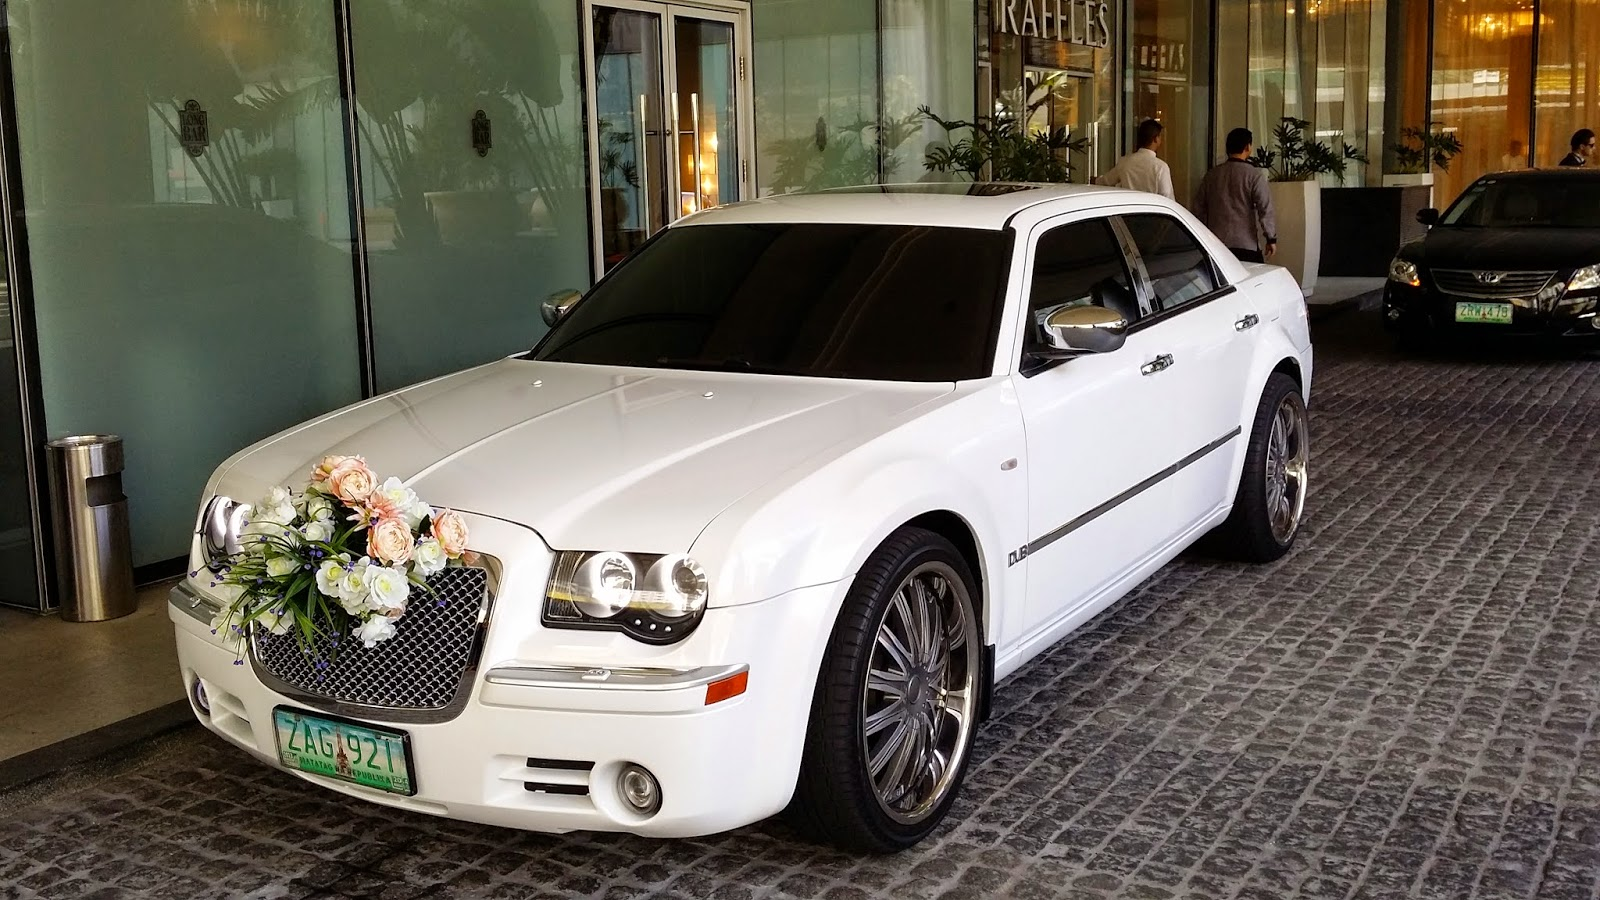 Bridal Car Philippines: BRIDAL CAR PHILIPPINES FOR RENT